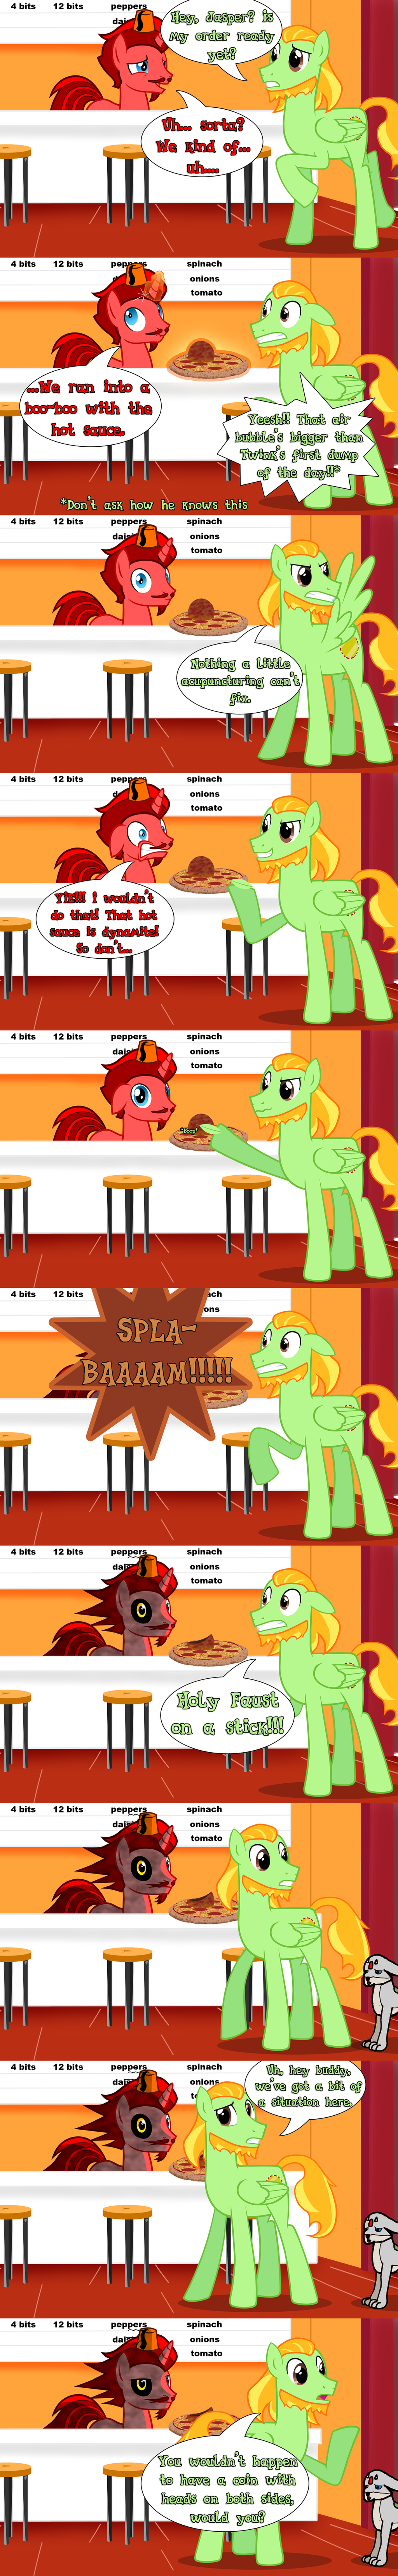 CMSN: Bubble, Bubble, Hot Sauce Trouble by JasperPie